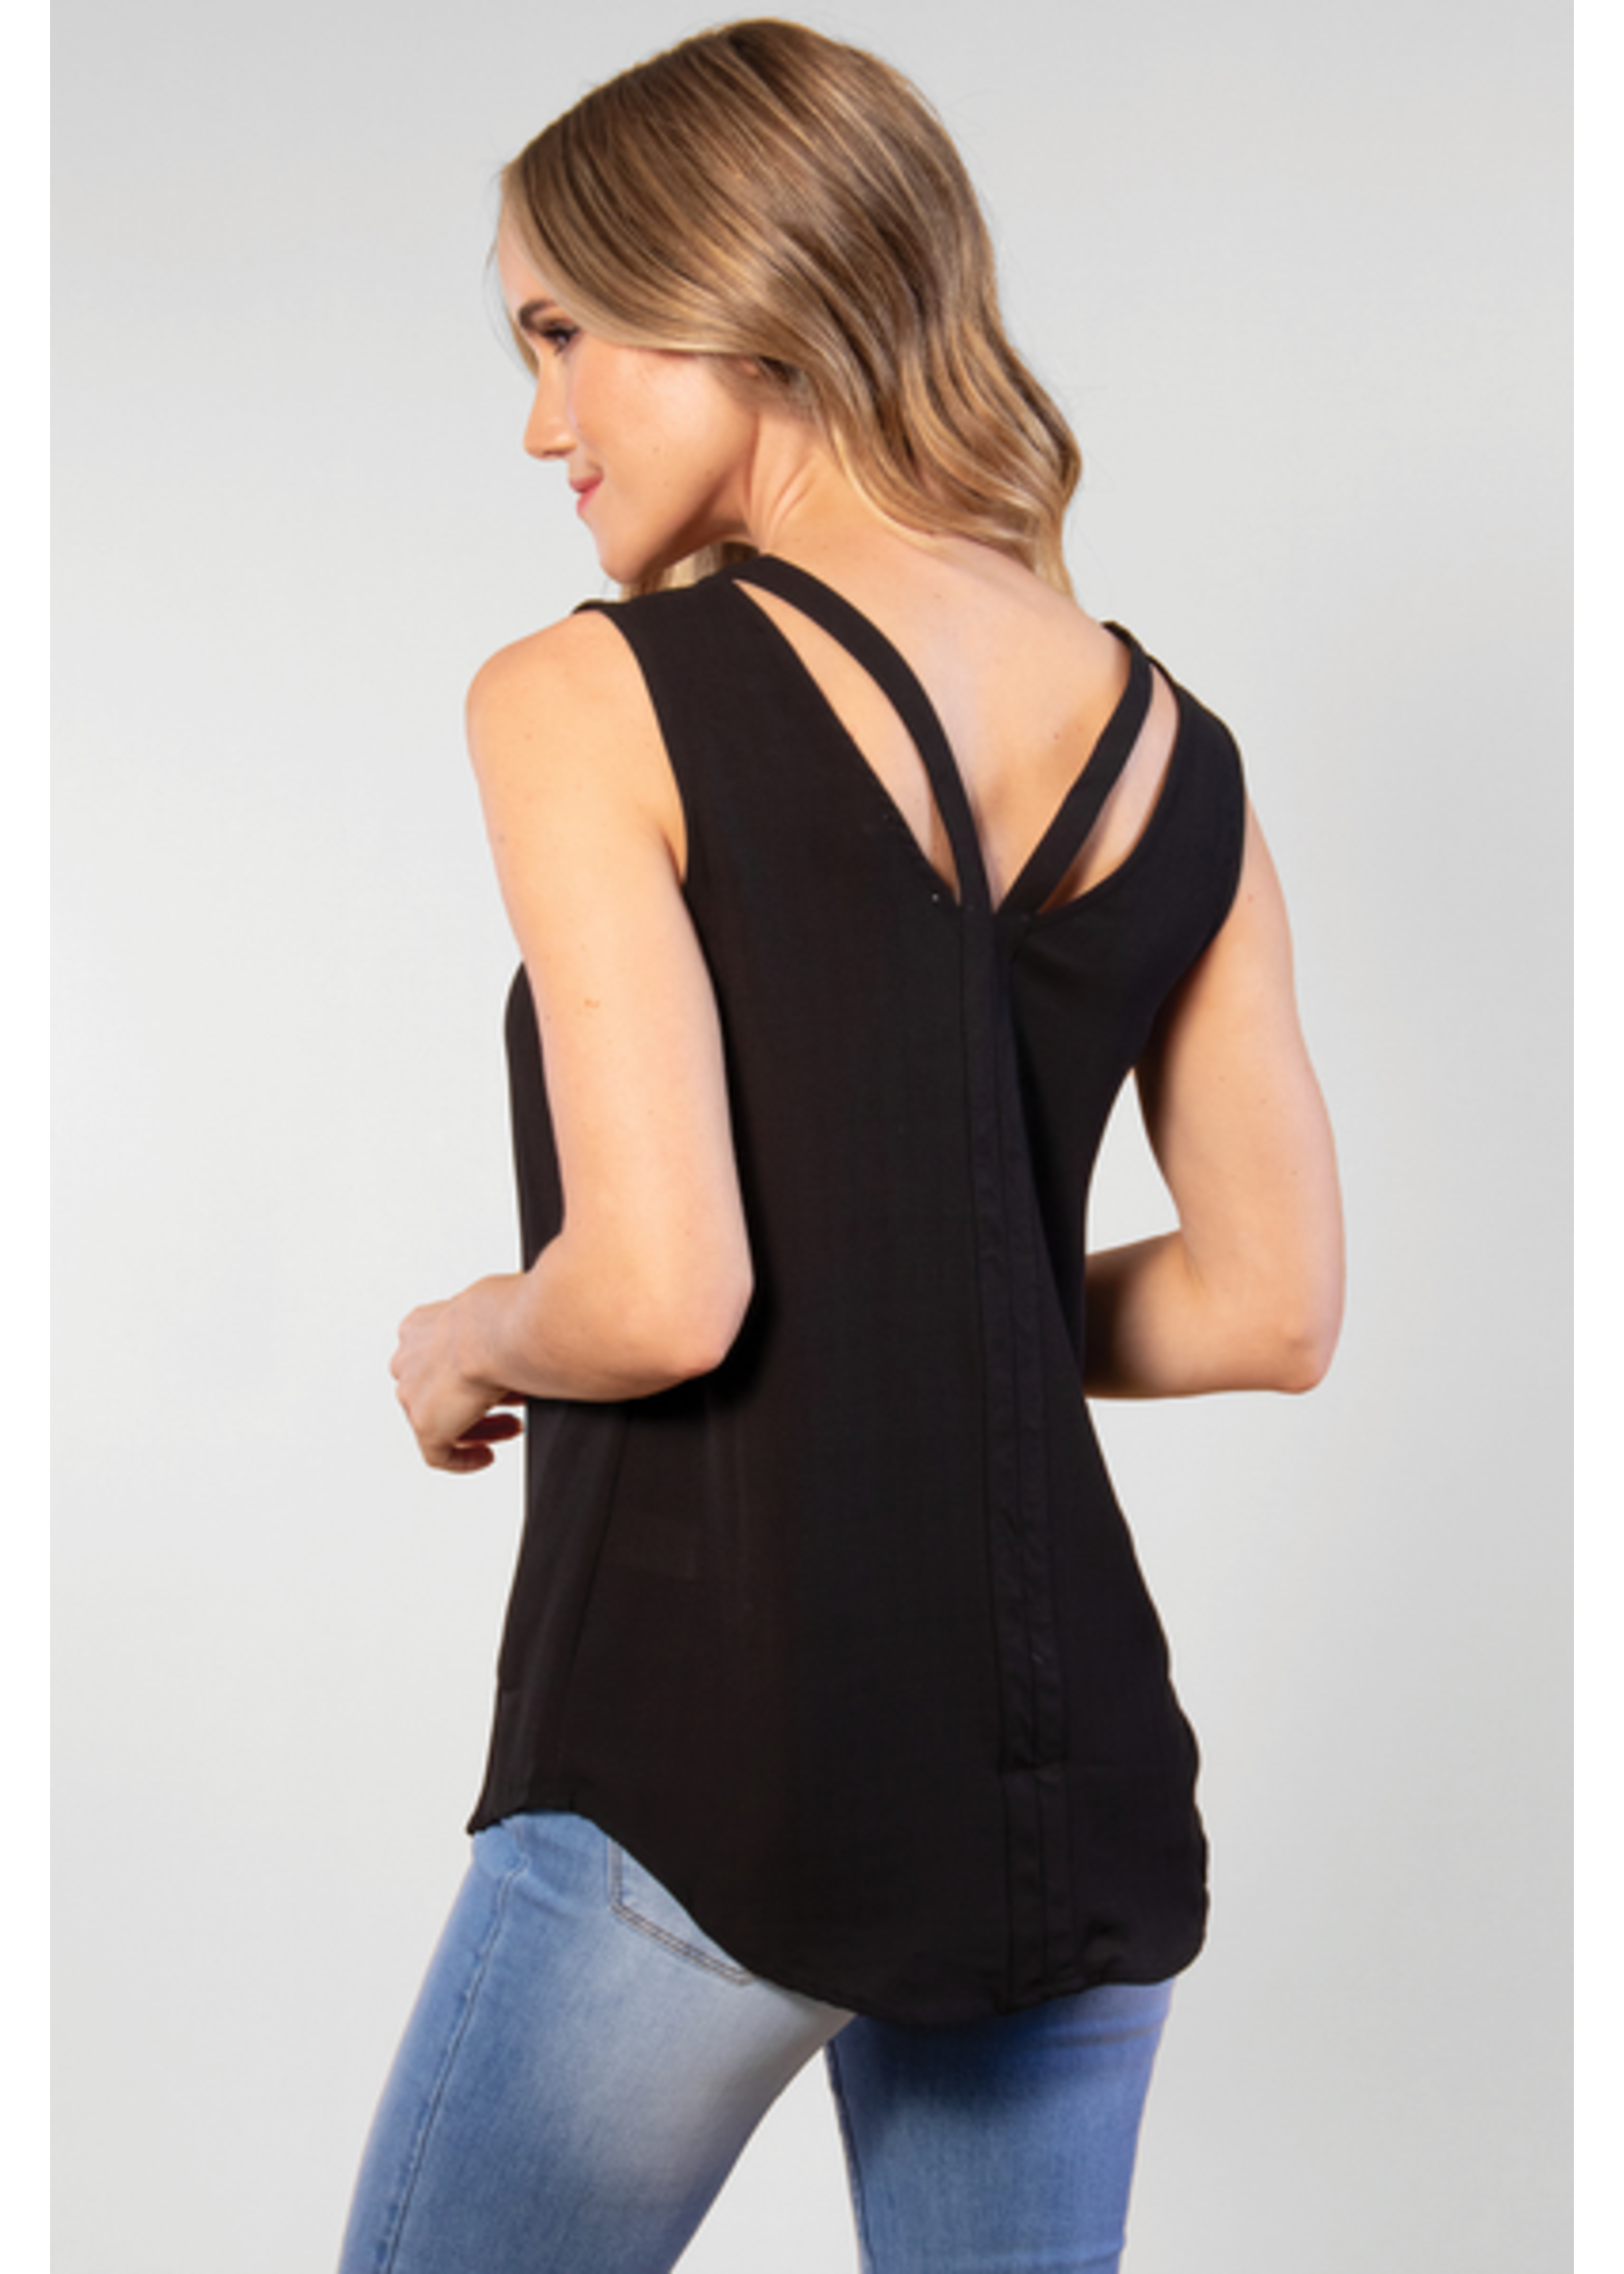 SIMPLY NOELLE CUT TO THE CHASE TOP ASSORTED COLORS S/M